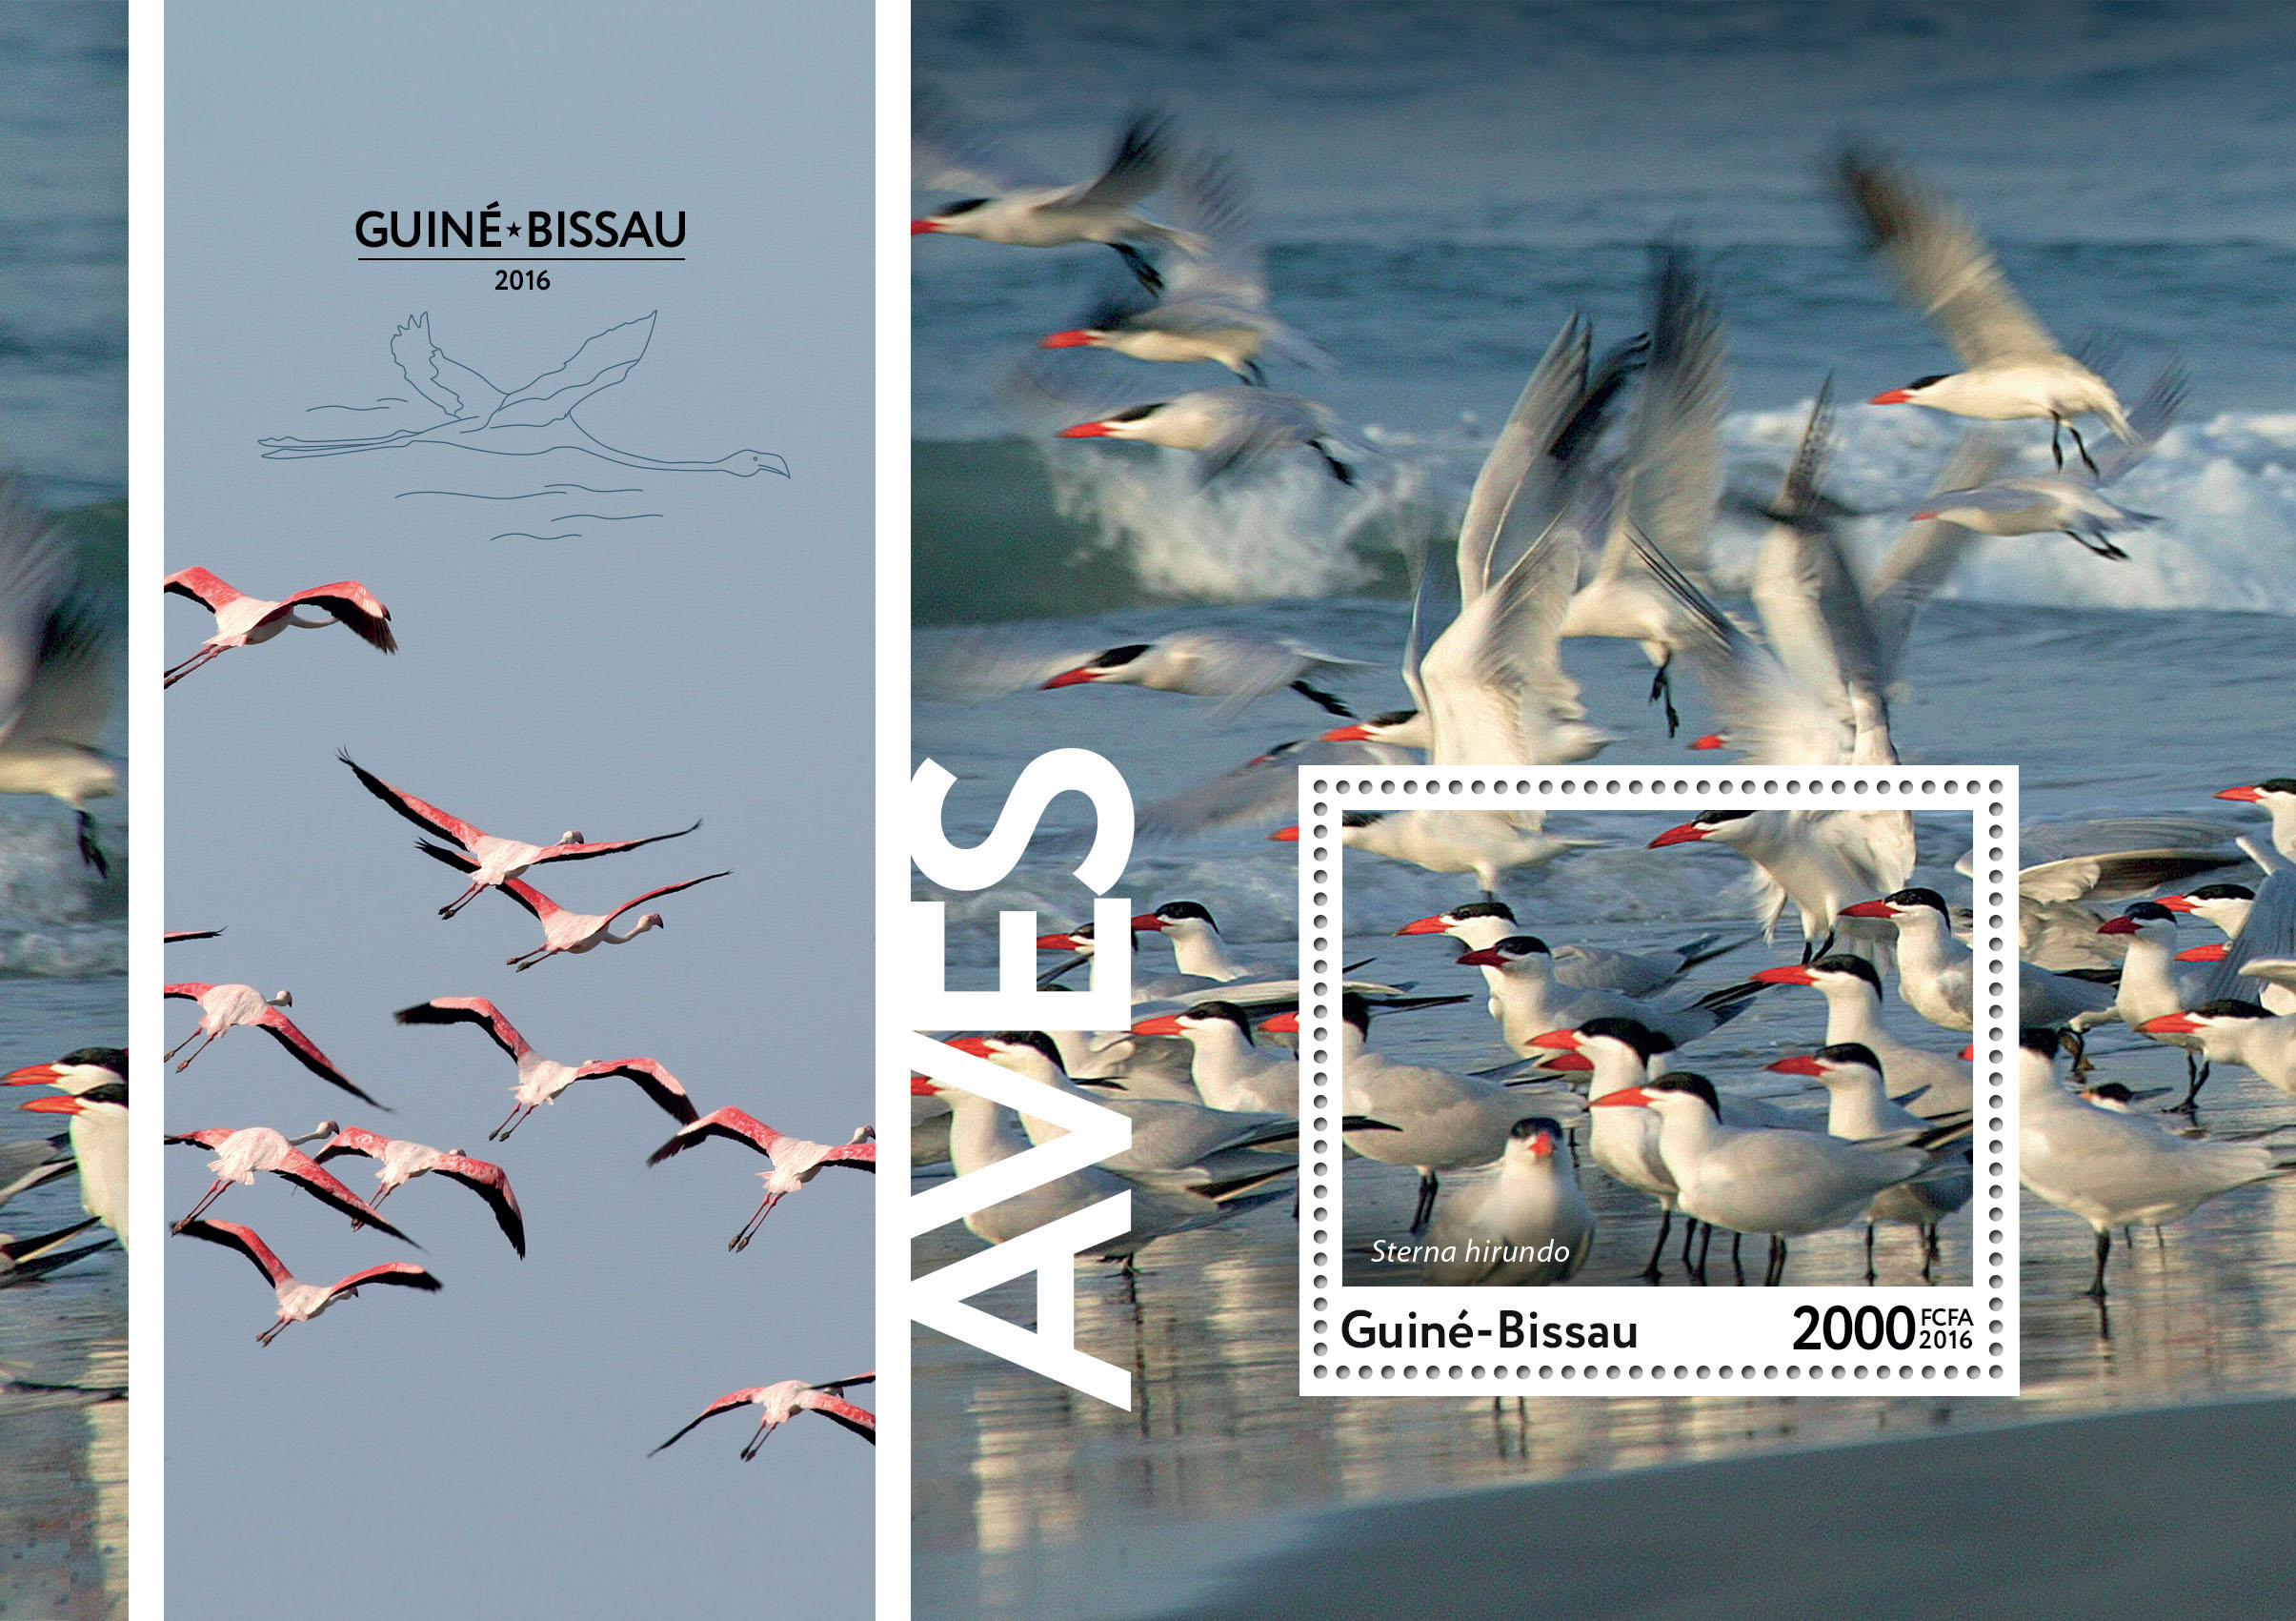 Birds s/s - Issue of Guinée-Bissau postage stamps